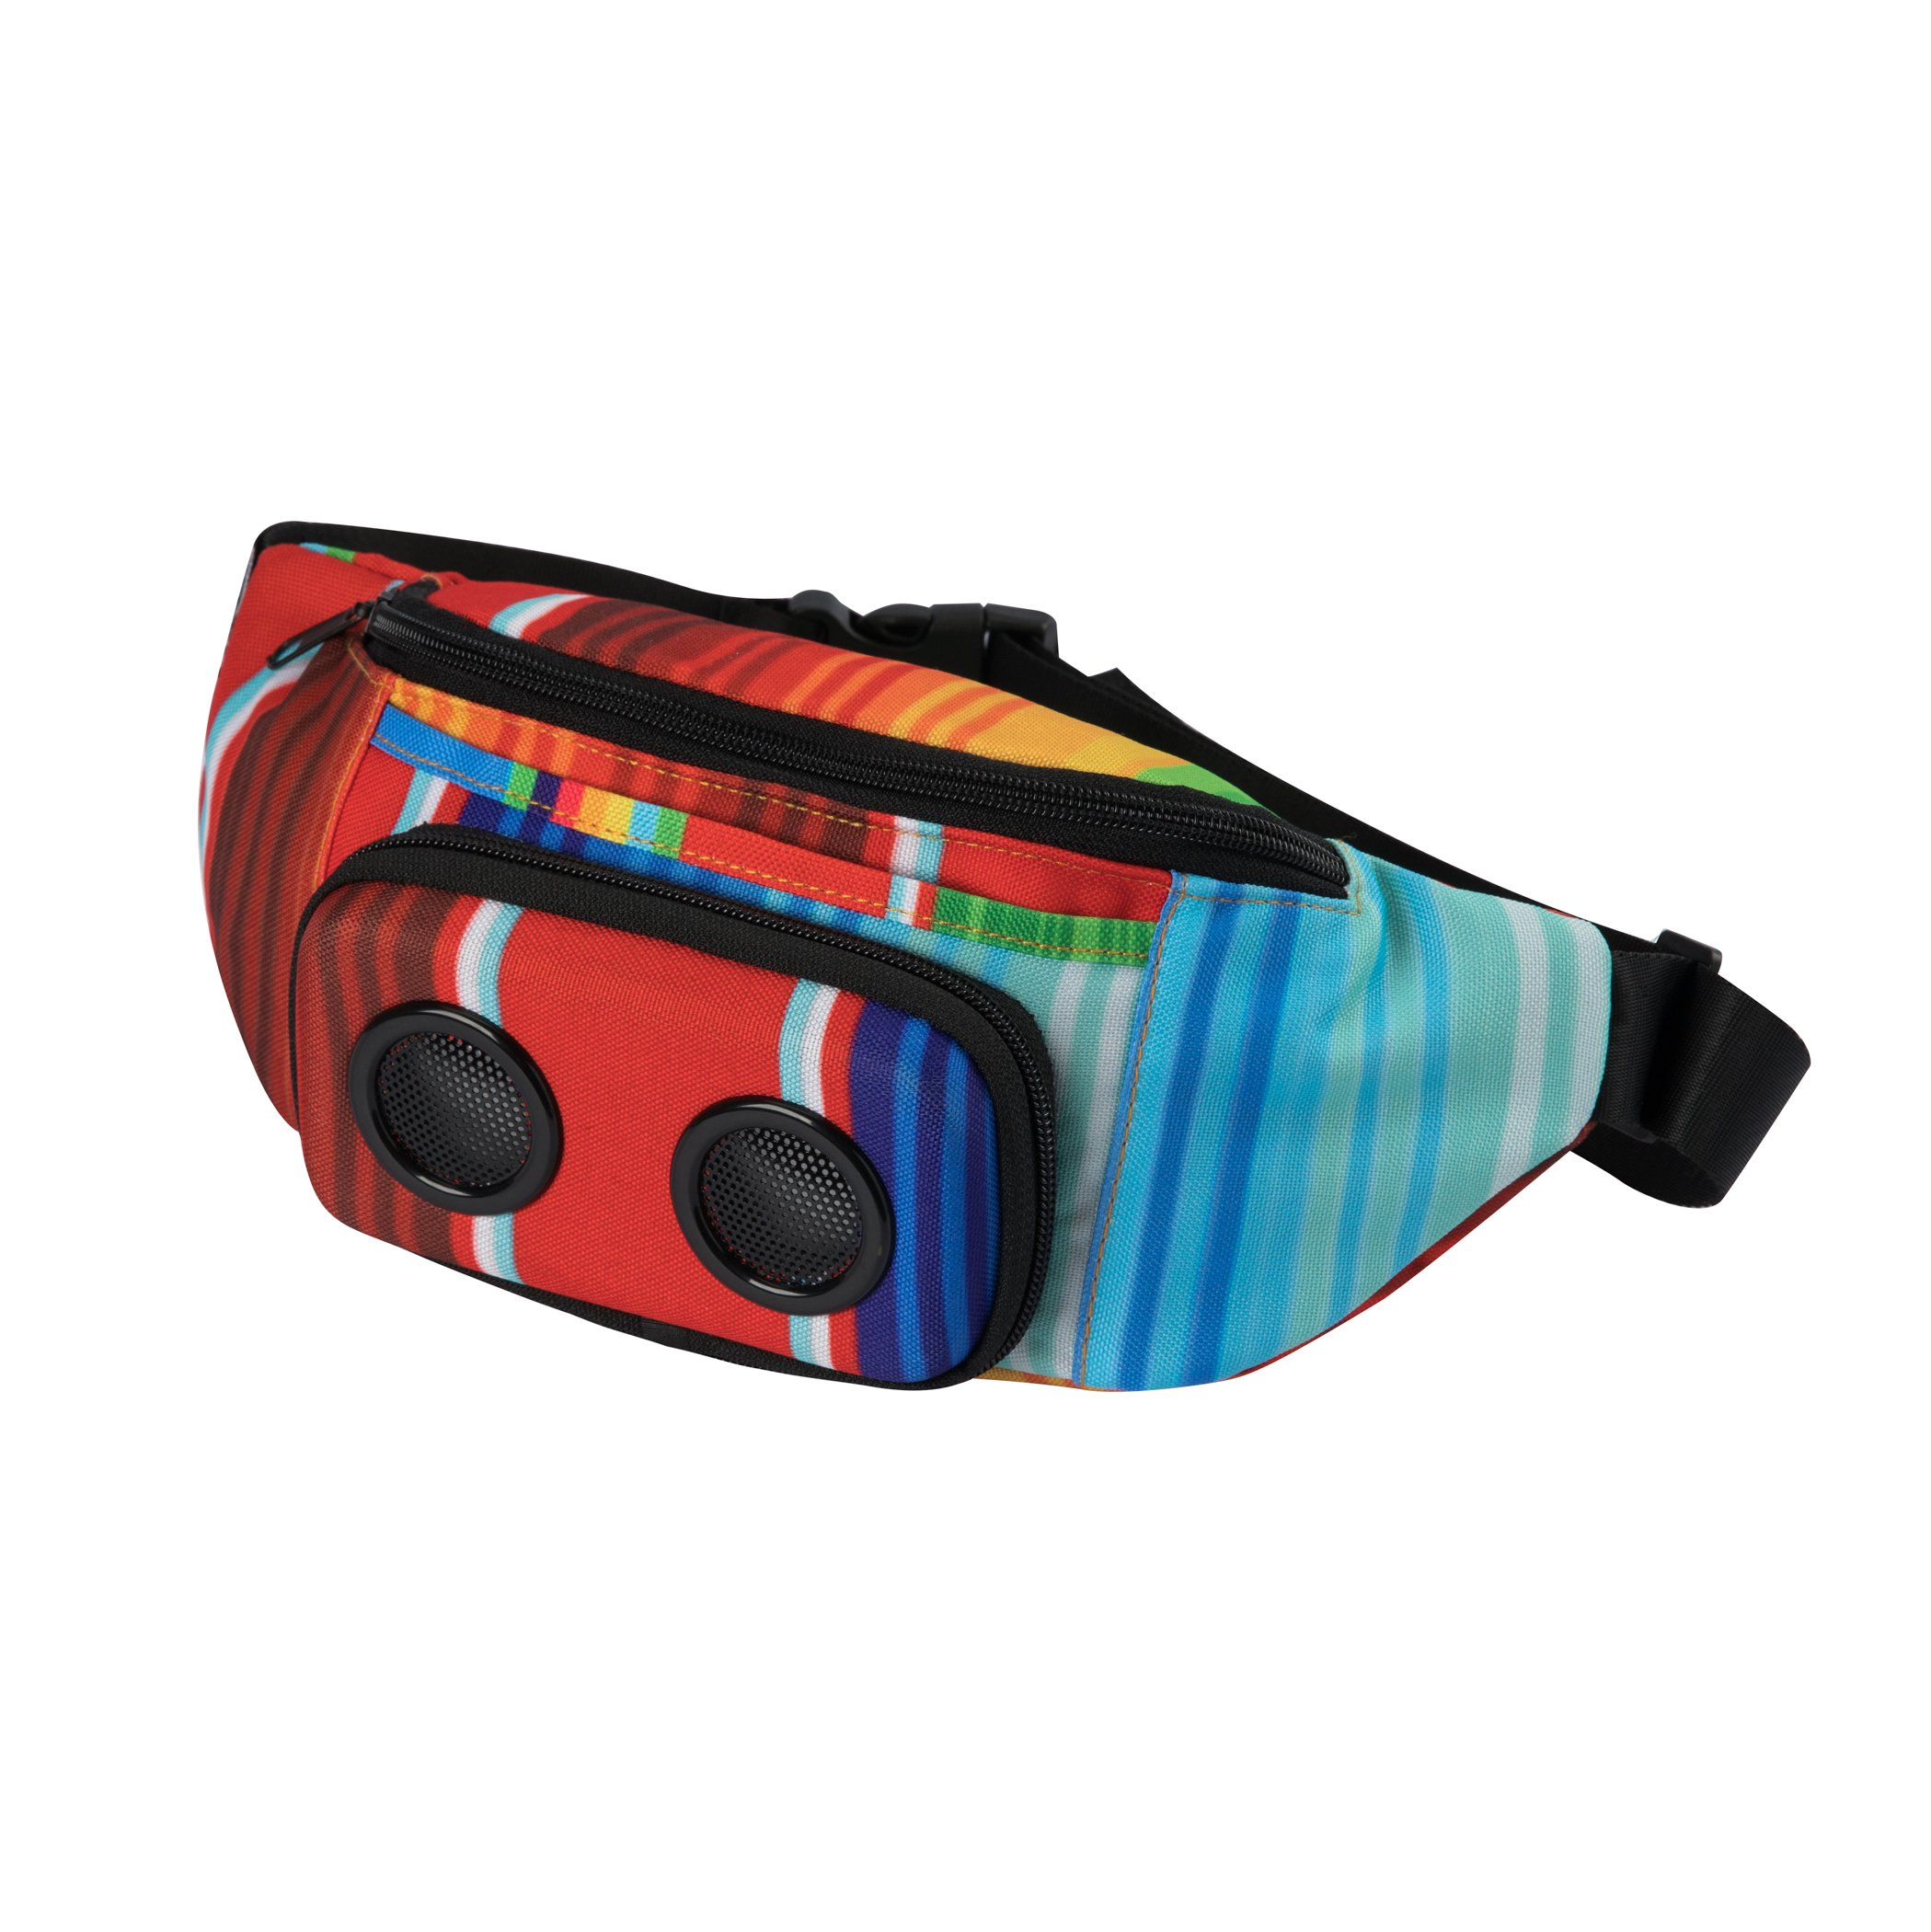 THE #1 Fannypack with Speakers. Bluetooth Fanny Pack for Parties / Festivals / Raves / Beach / Boats. Rechargeable, Works with iPhone & Android. #1 Bachelorette Party Gift (Rainbow, 2018 Edition)